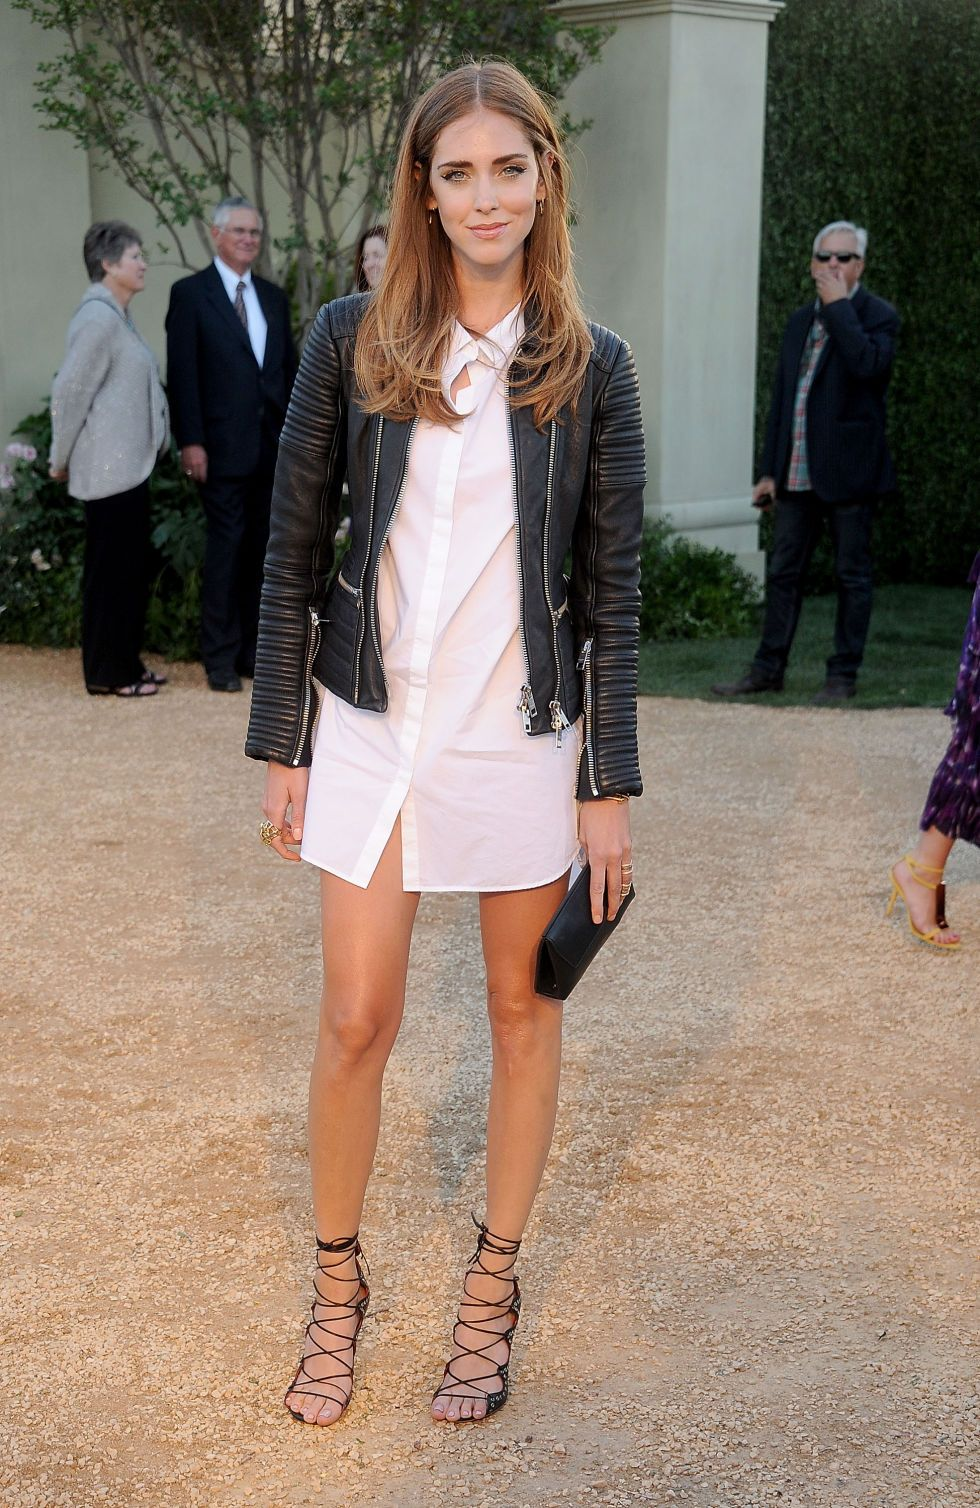 Burberry Hosts A Star Studded Show In Los Angeles Fashion Leather Jacket Dress White Shirt Dress Outfit